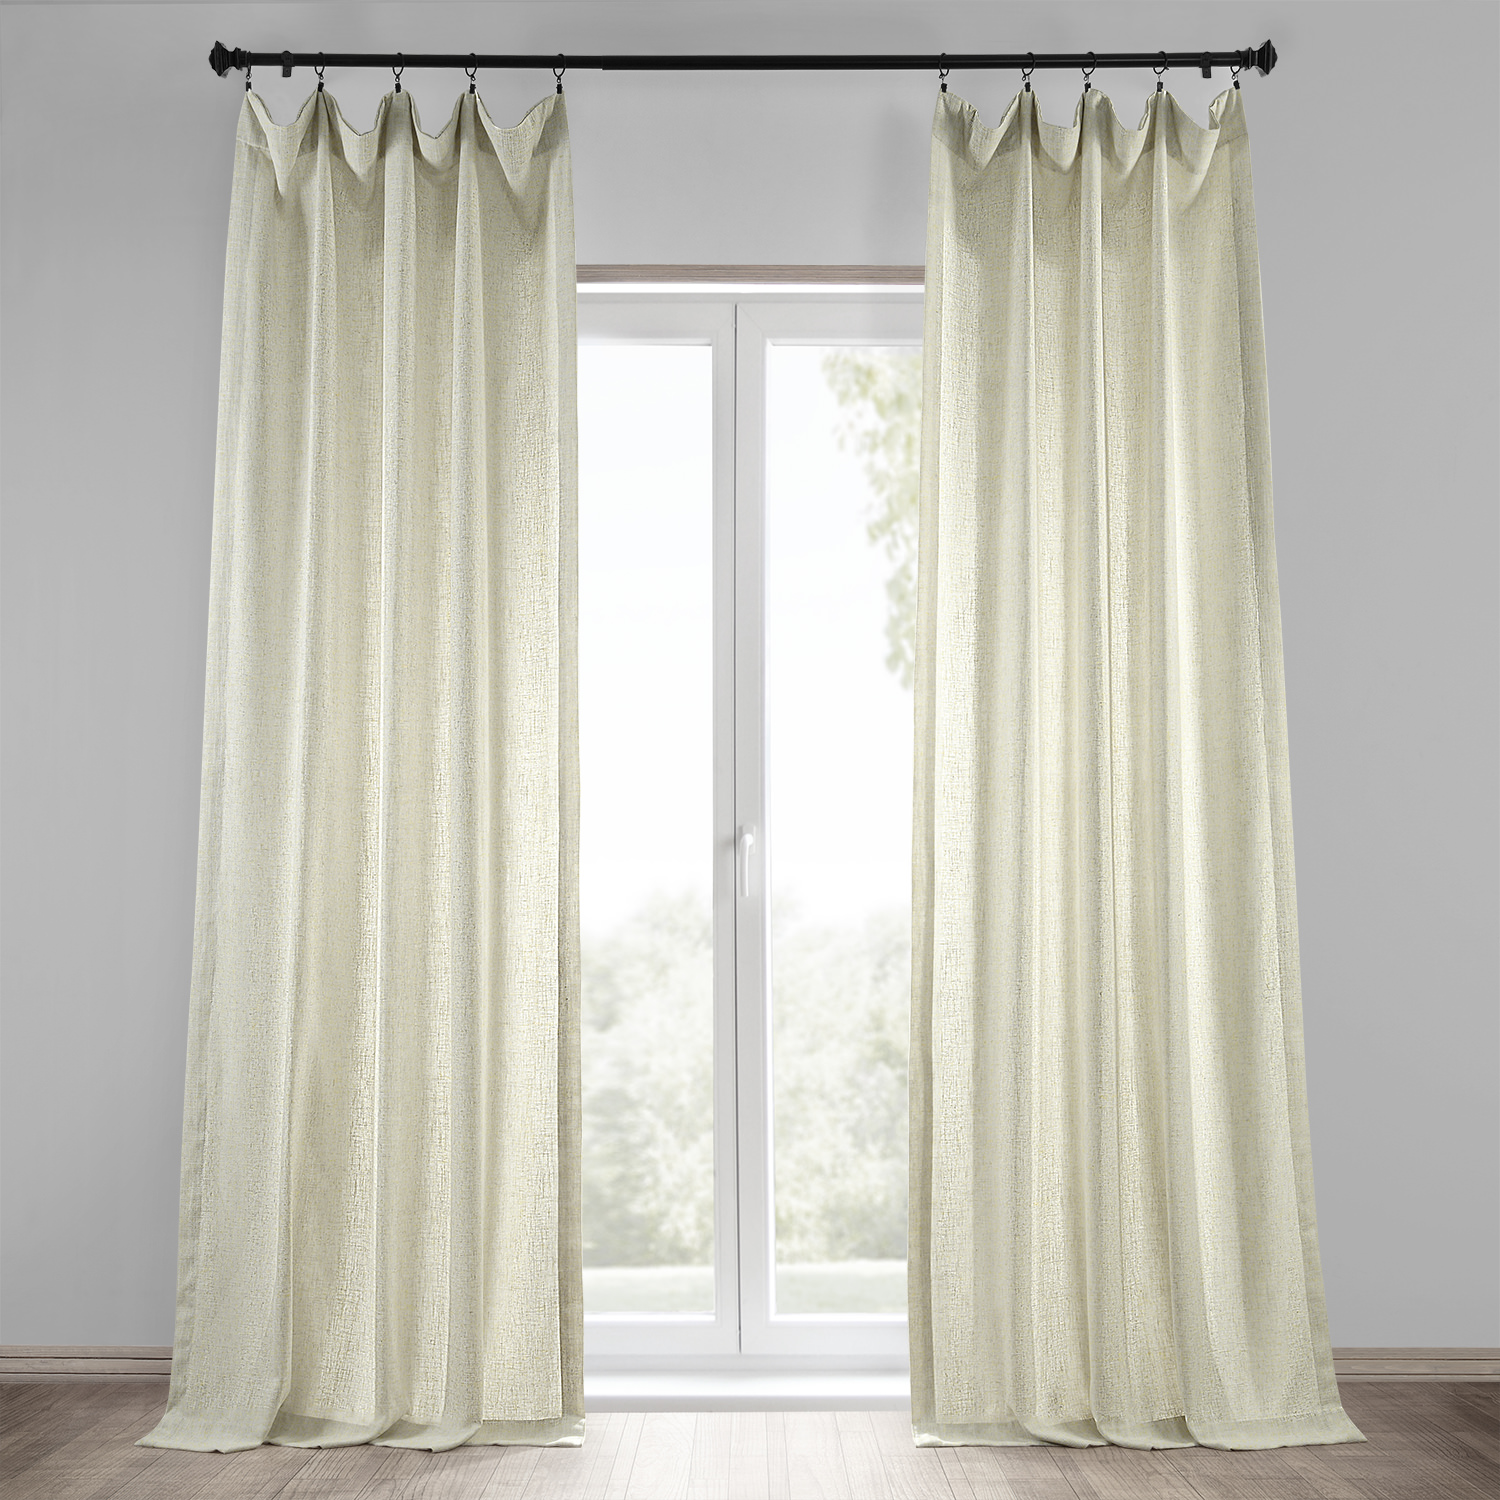 Curtains with hooks on the back 187 home design 2017 - Barley Heavy Faux Linen Curtain